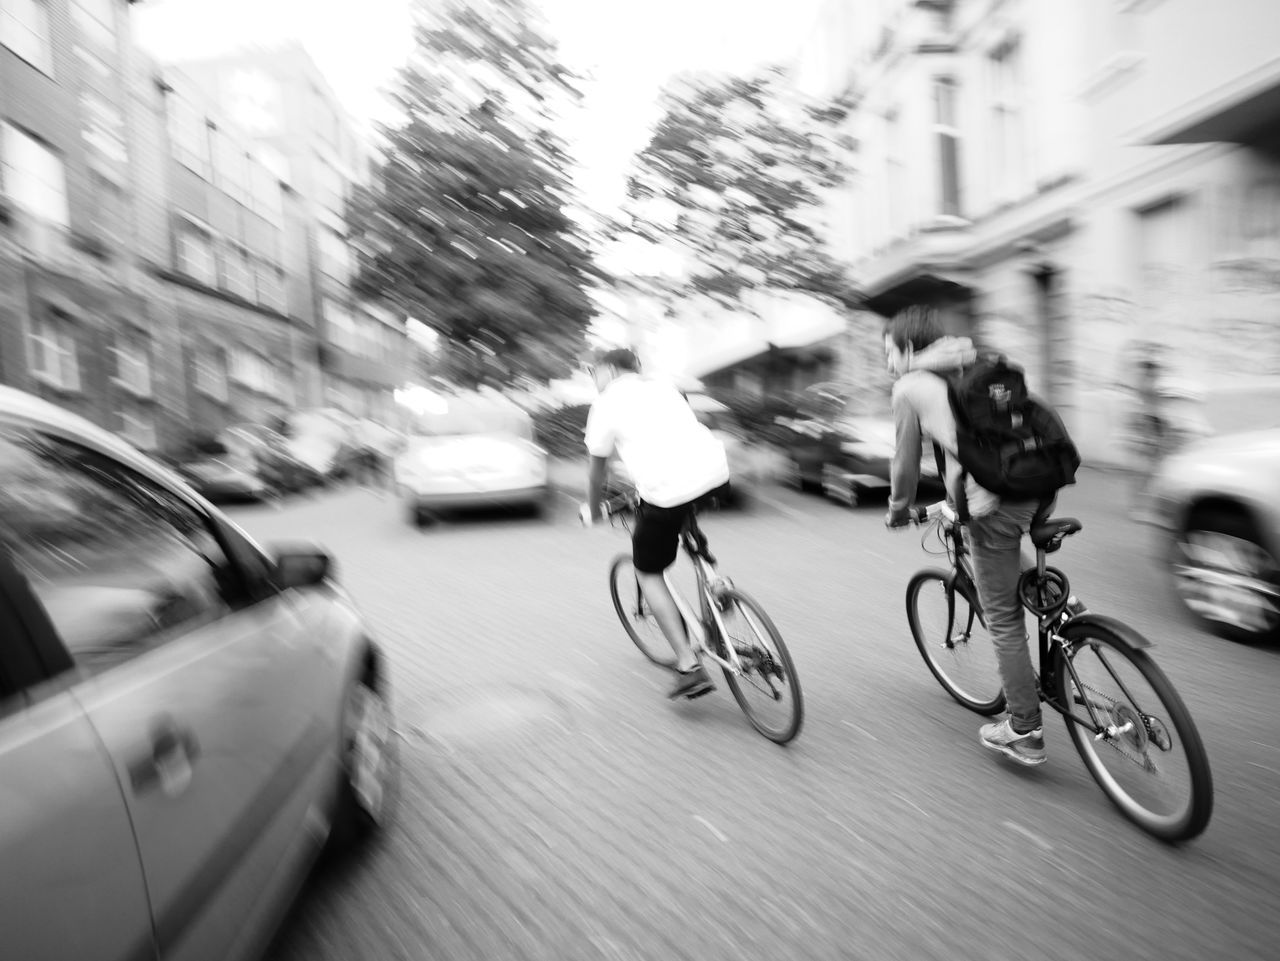 blurred motion, bicycle, motion, speed, mode of transport, transportation, land vehicle, architecture, city, outdoors, built structure, building exterior, day, road, real people, men, people